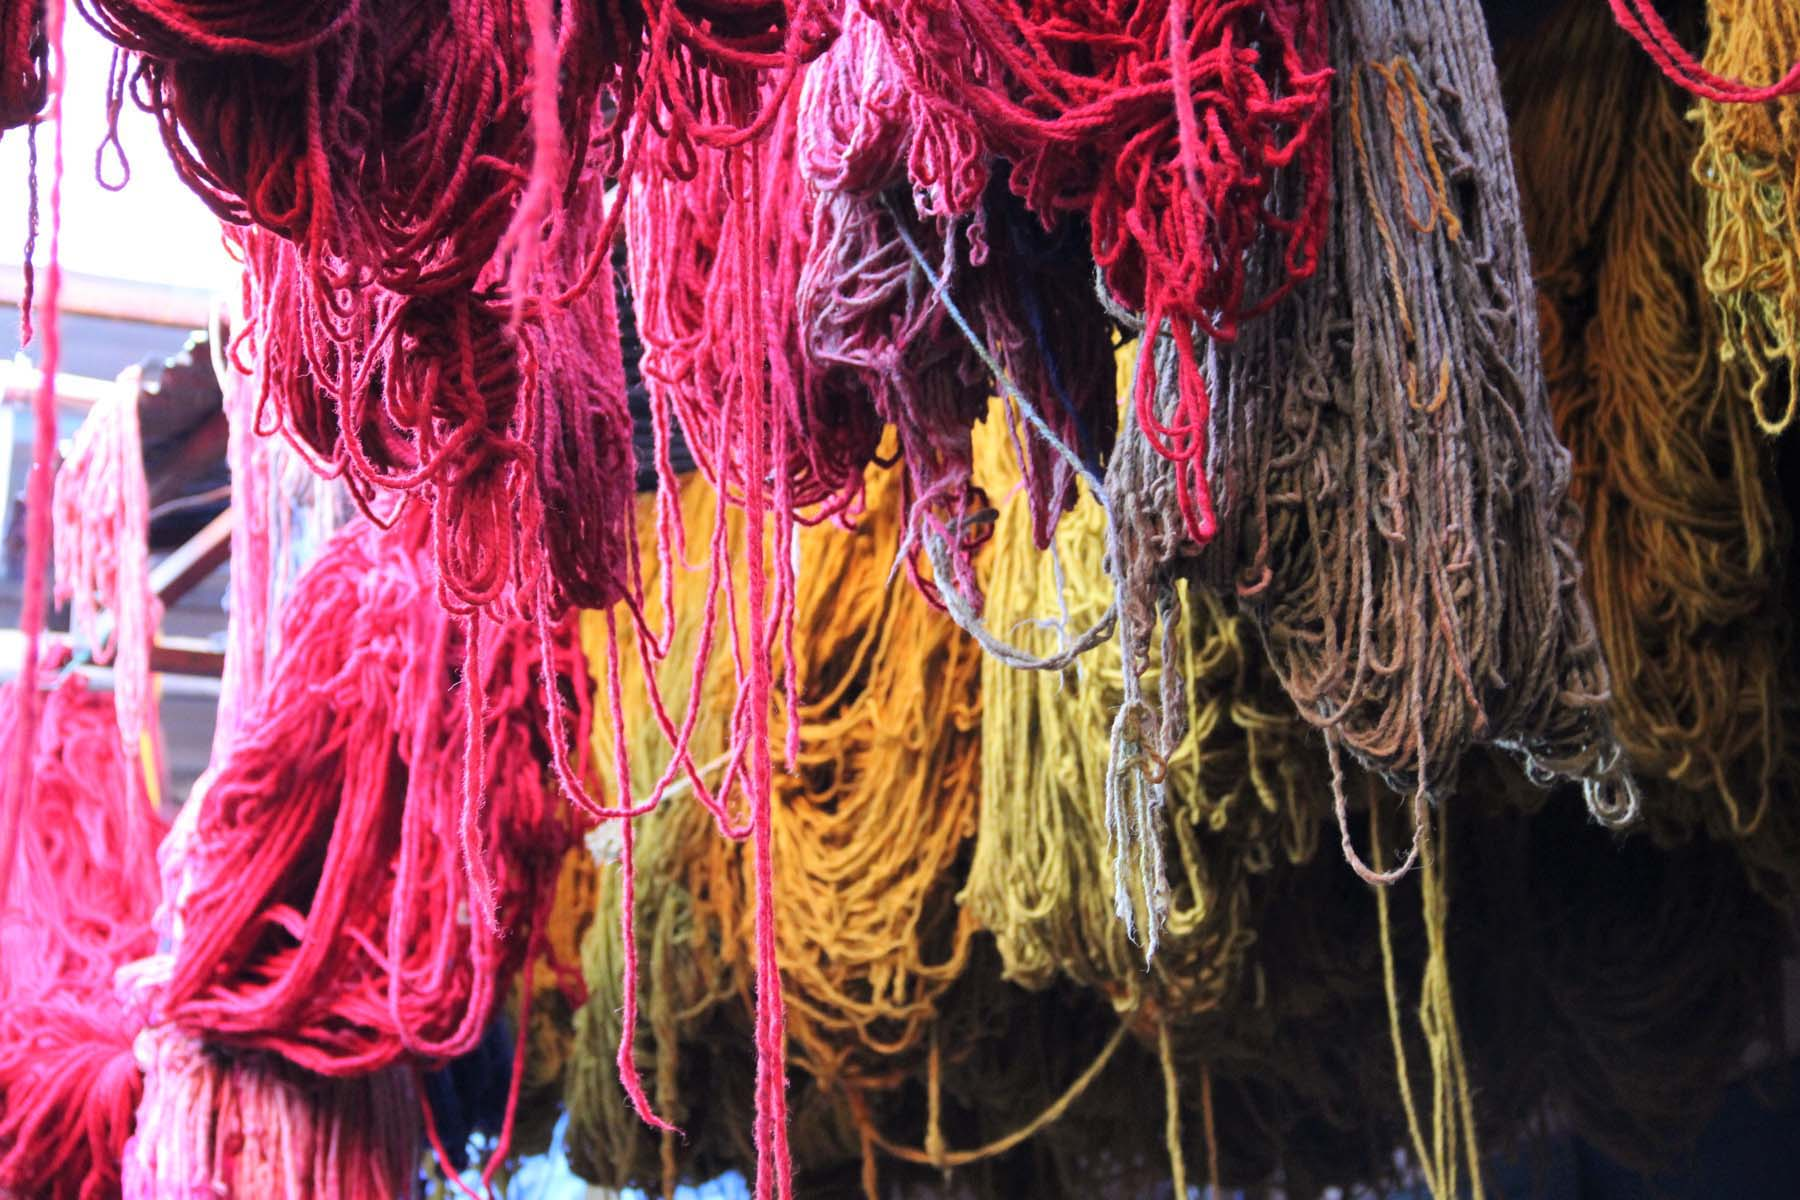 Wool fibers in Marrakech's dyers souk